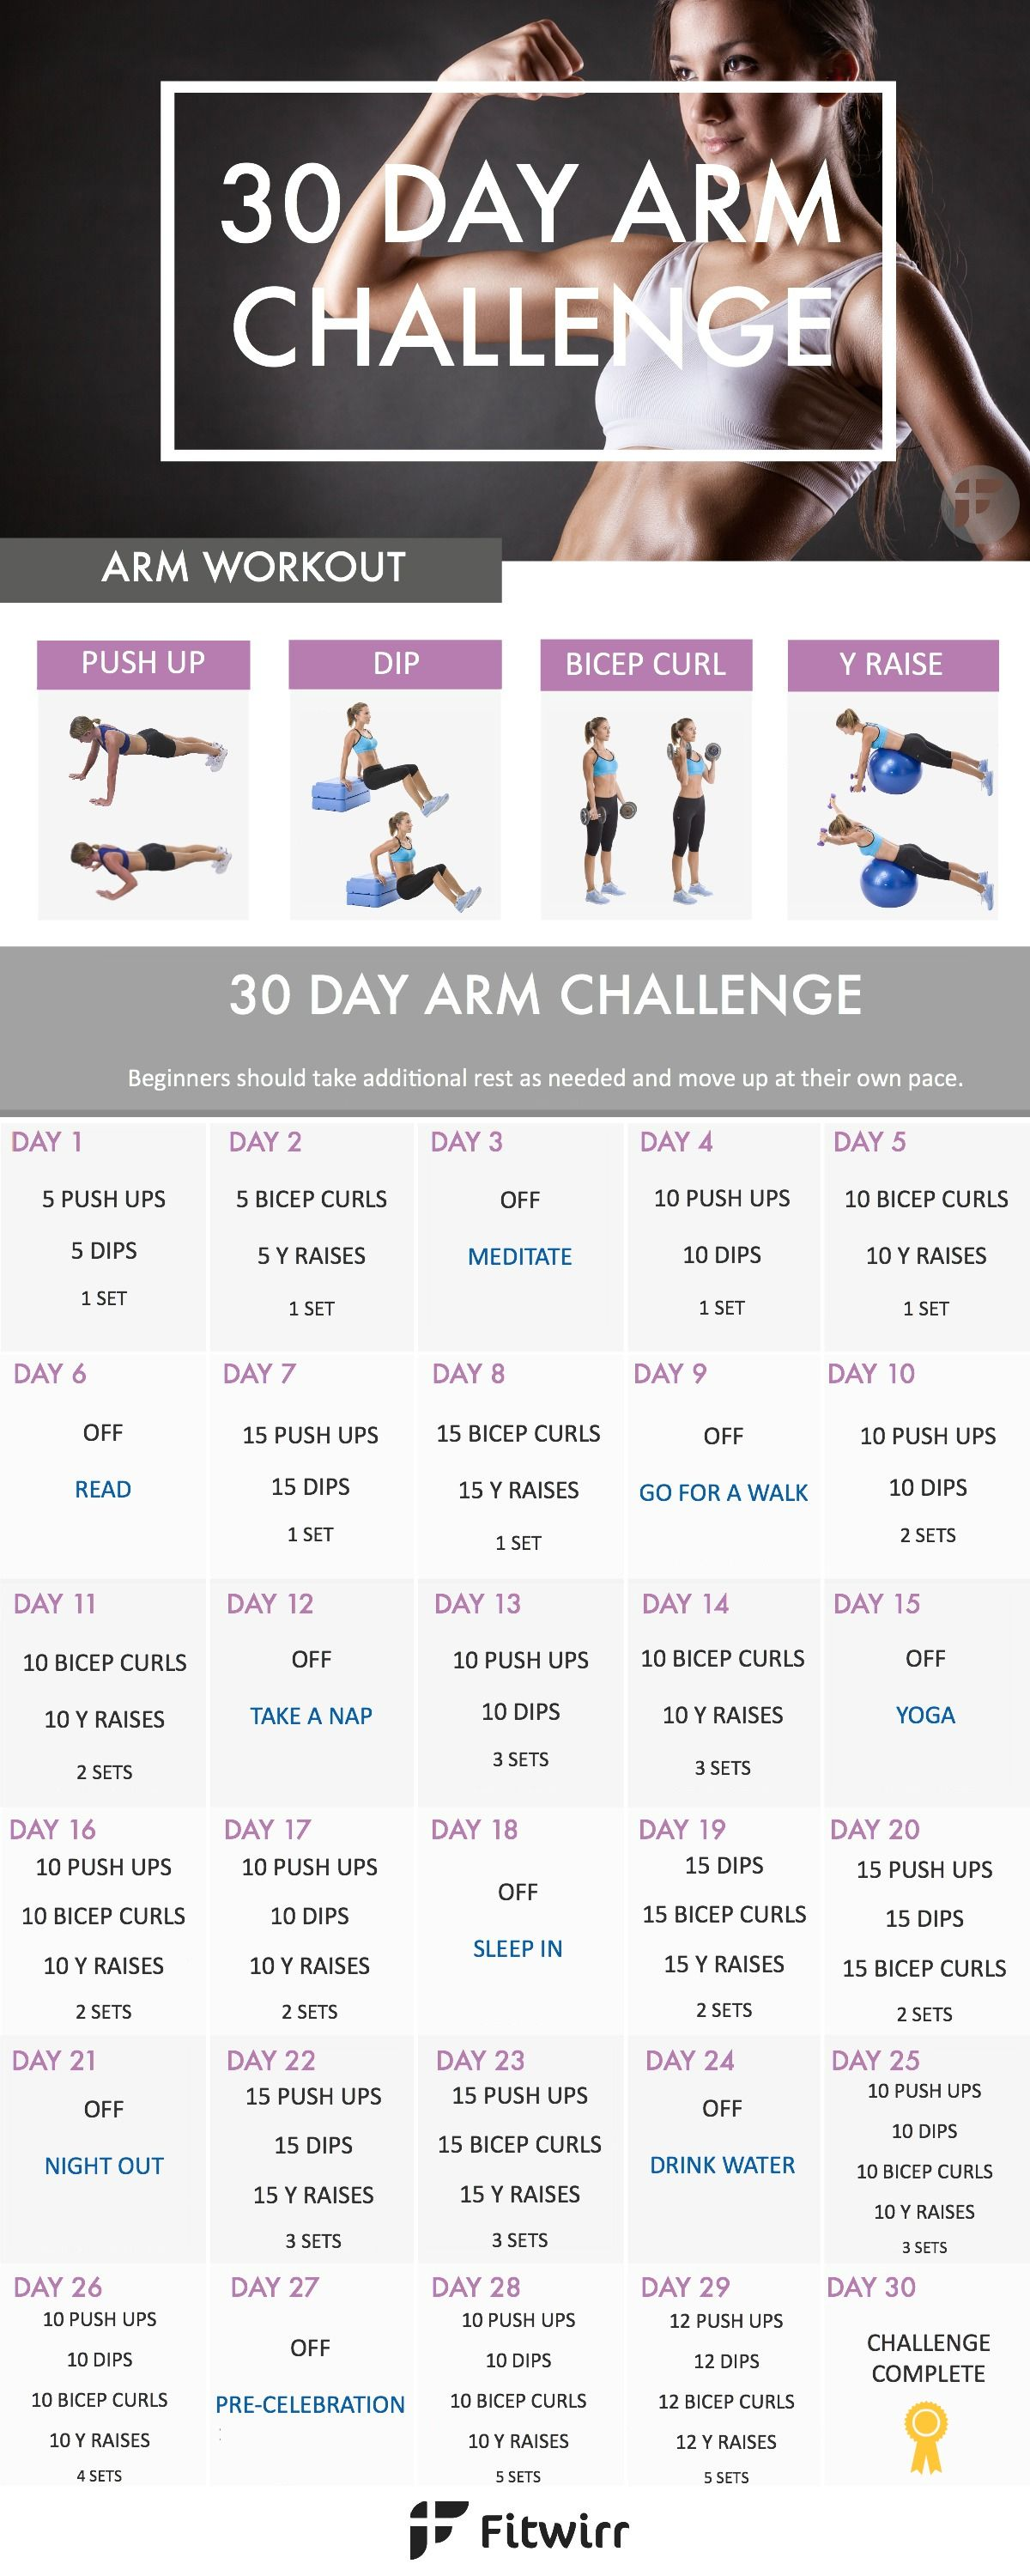 30 Day Arm Challenge To Sculpt Your Best Arms Ever Fitwirr Arm Workout Challenge 30 Day Arm Challenge 30 Day Arm